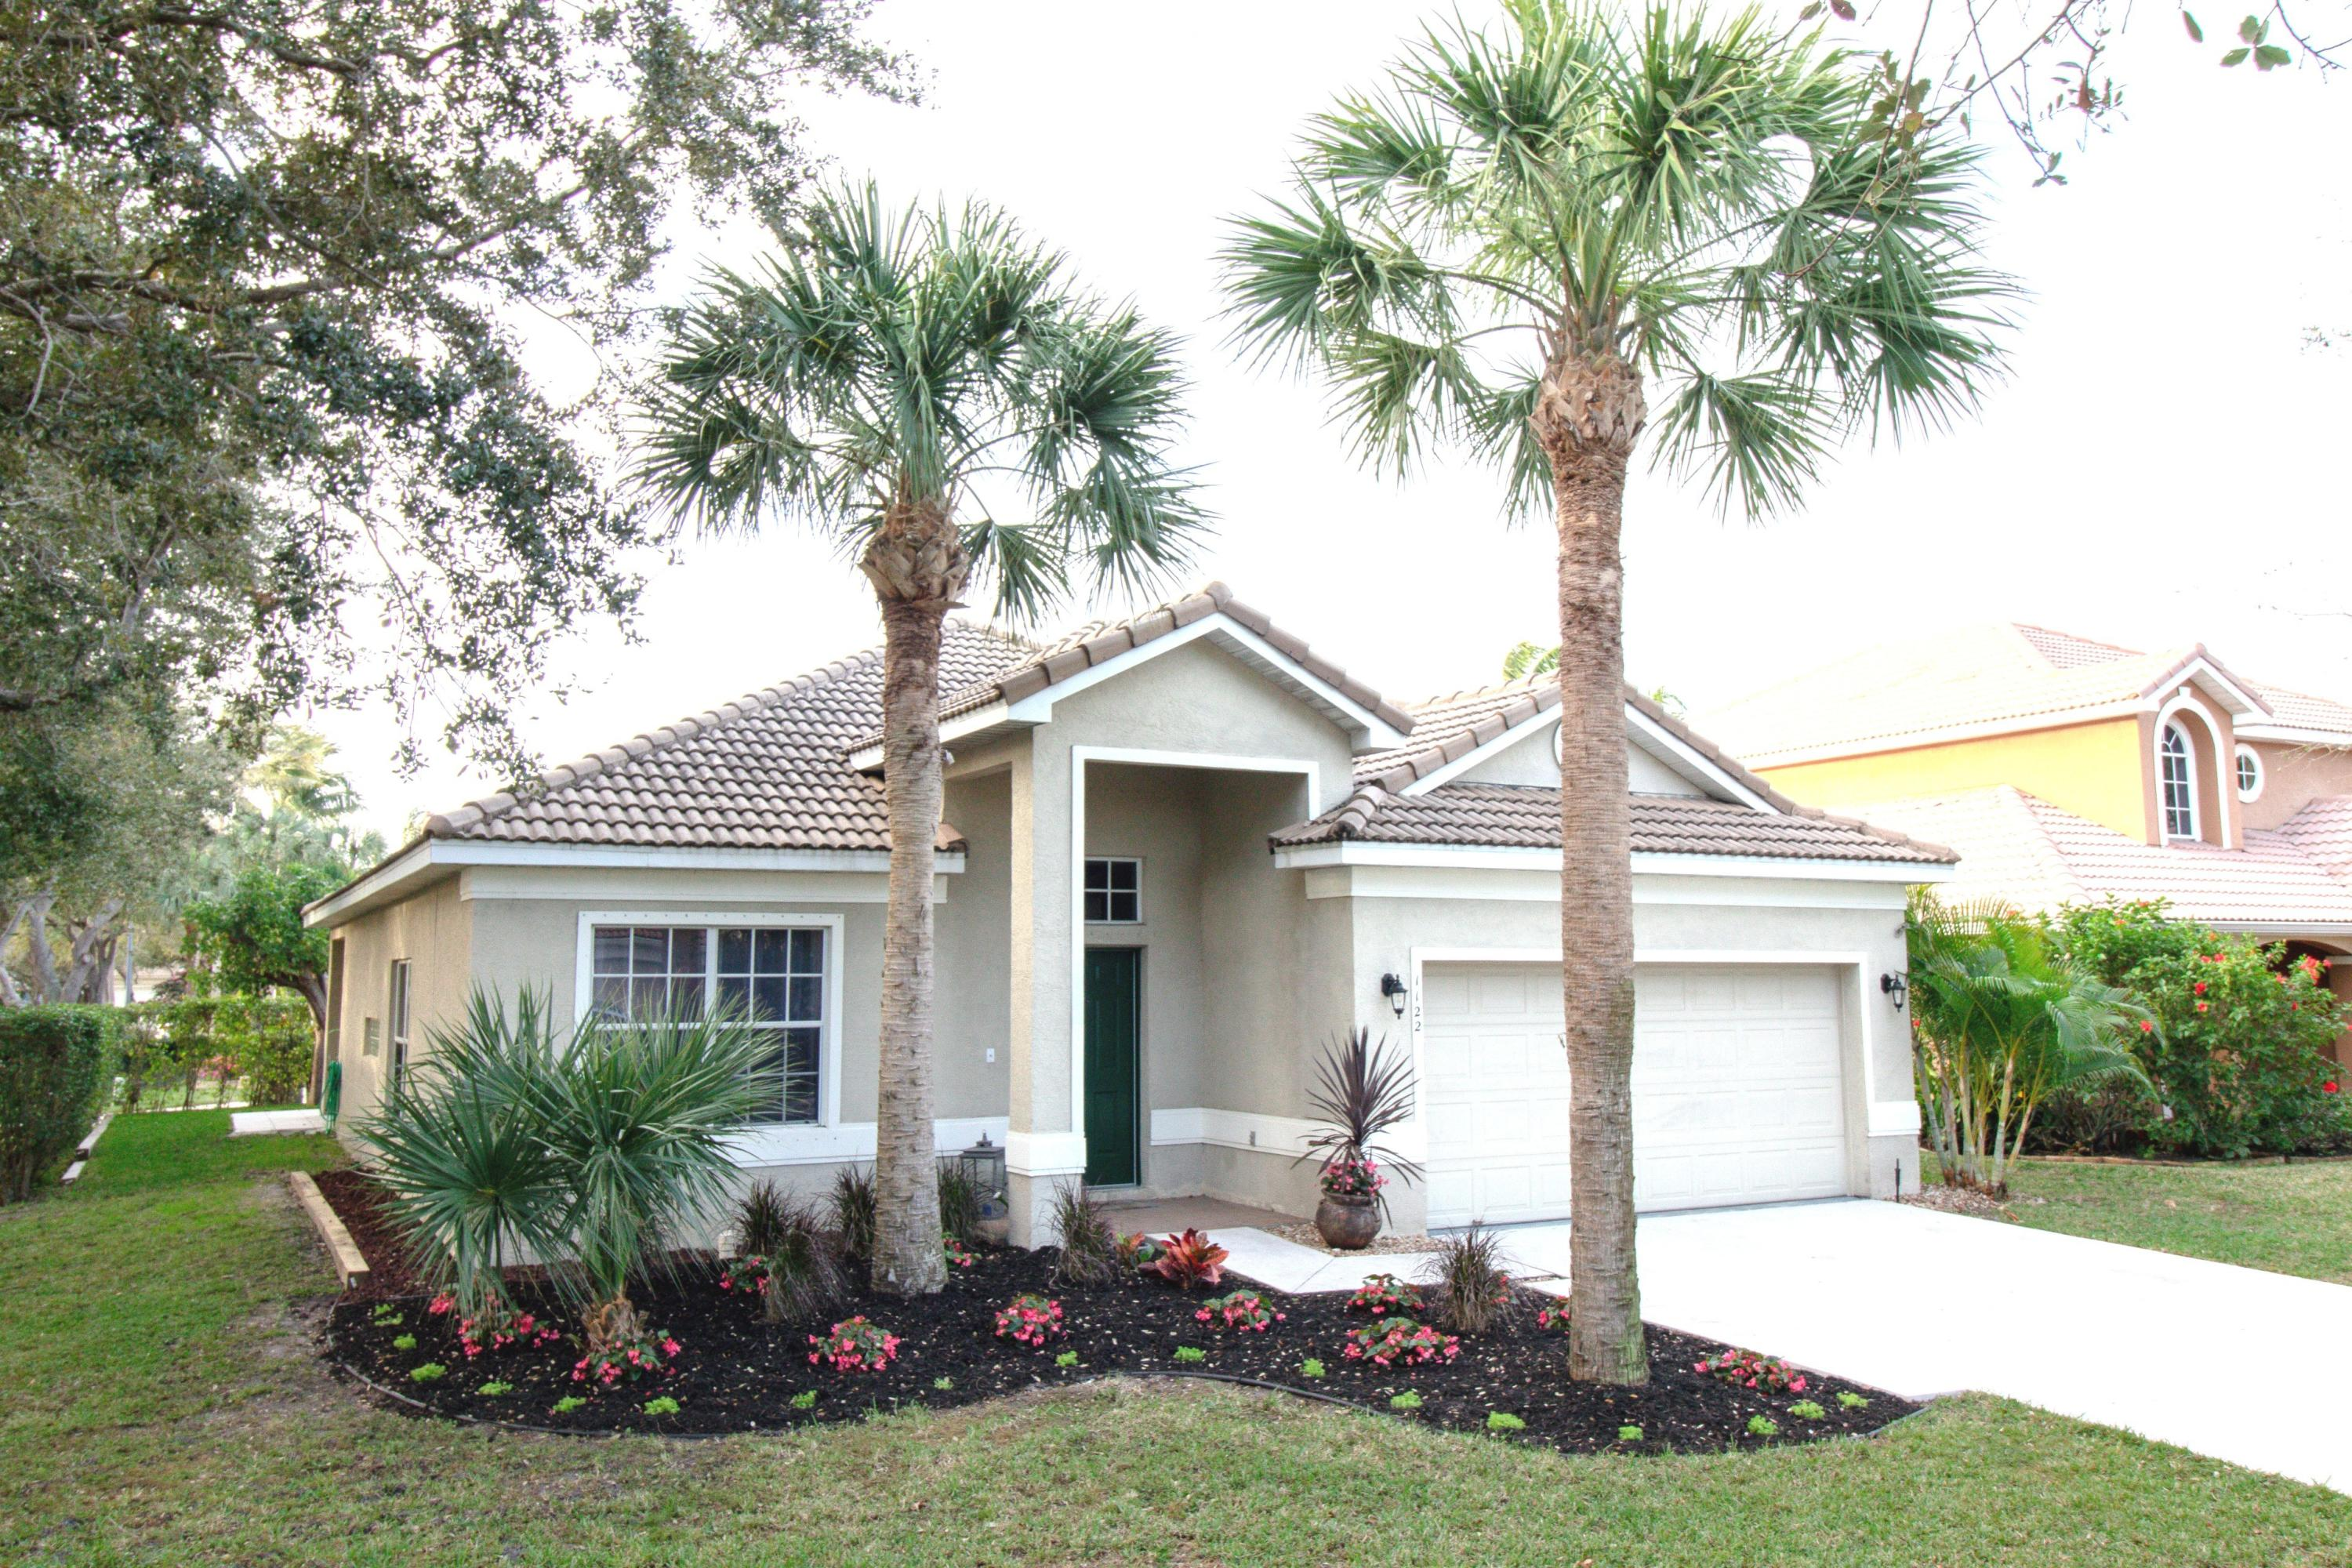 Home for sale in Delray Lakes Delray Beach Florida